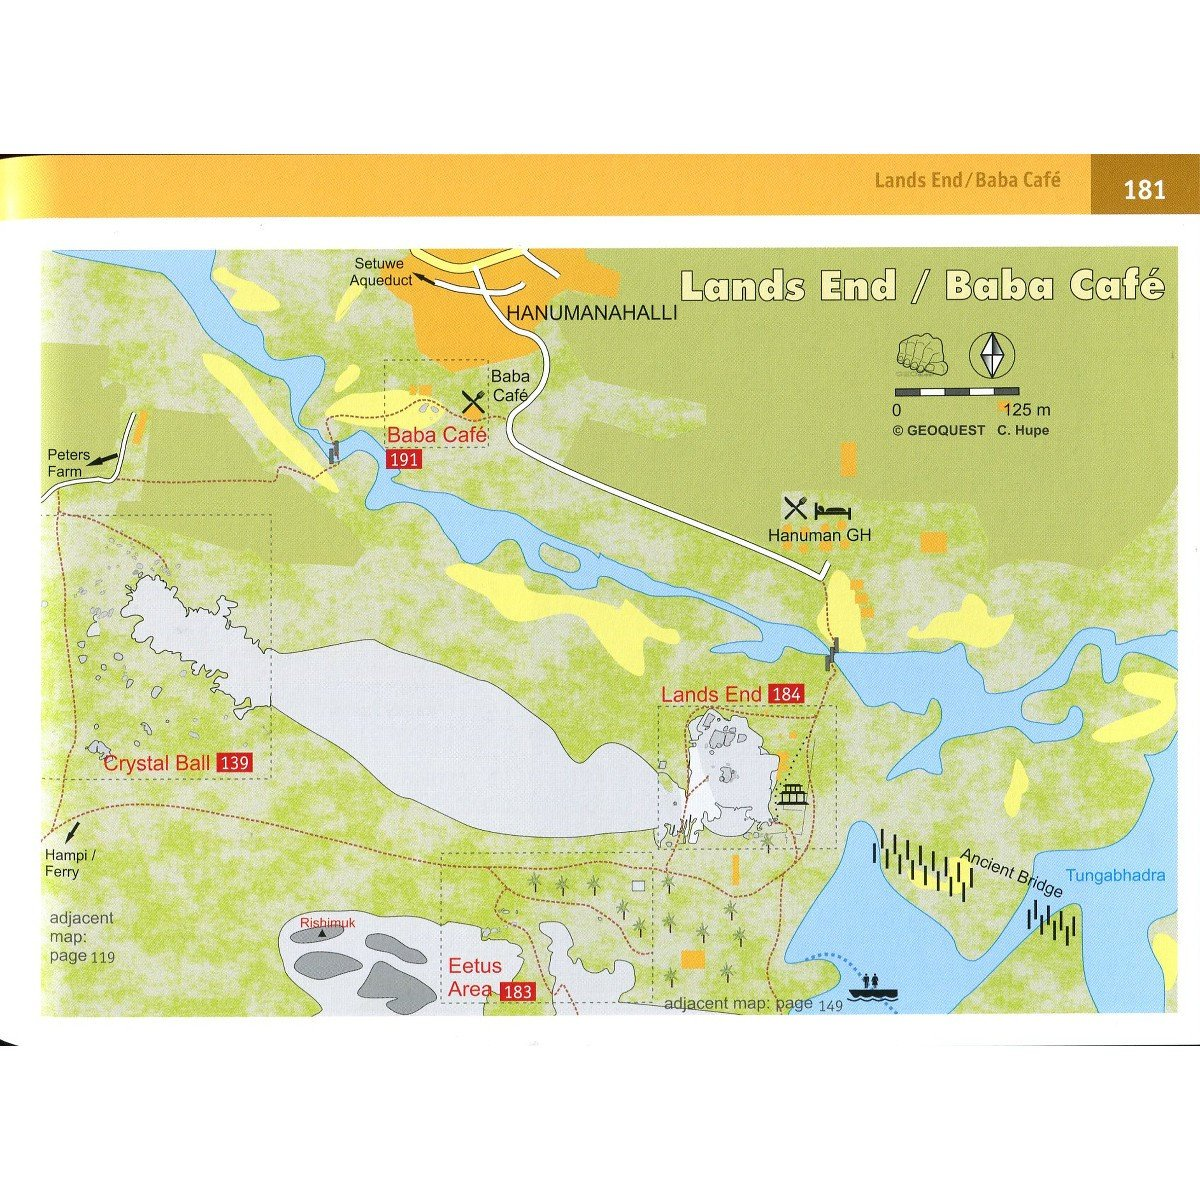 Golden Boulders: Hampi Bouldering, inside map page examples showing maps